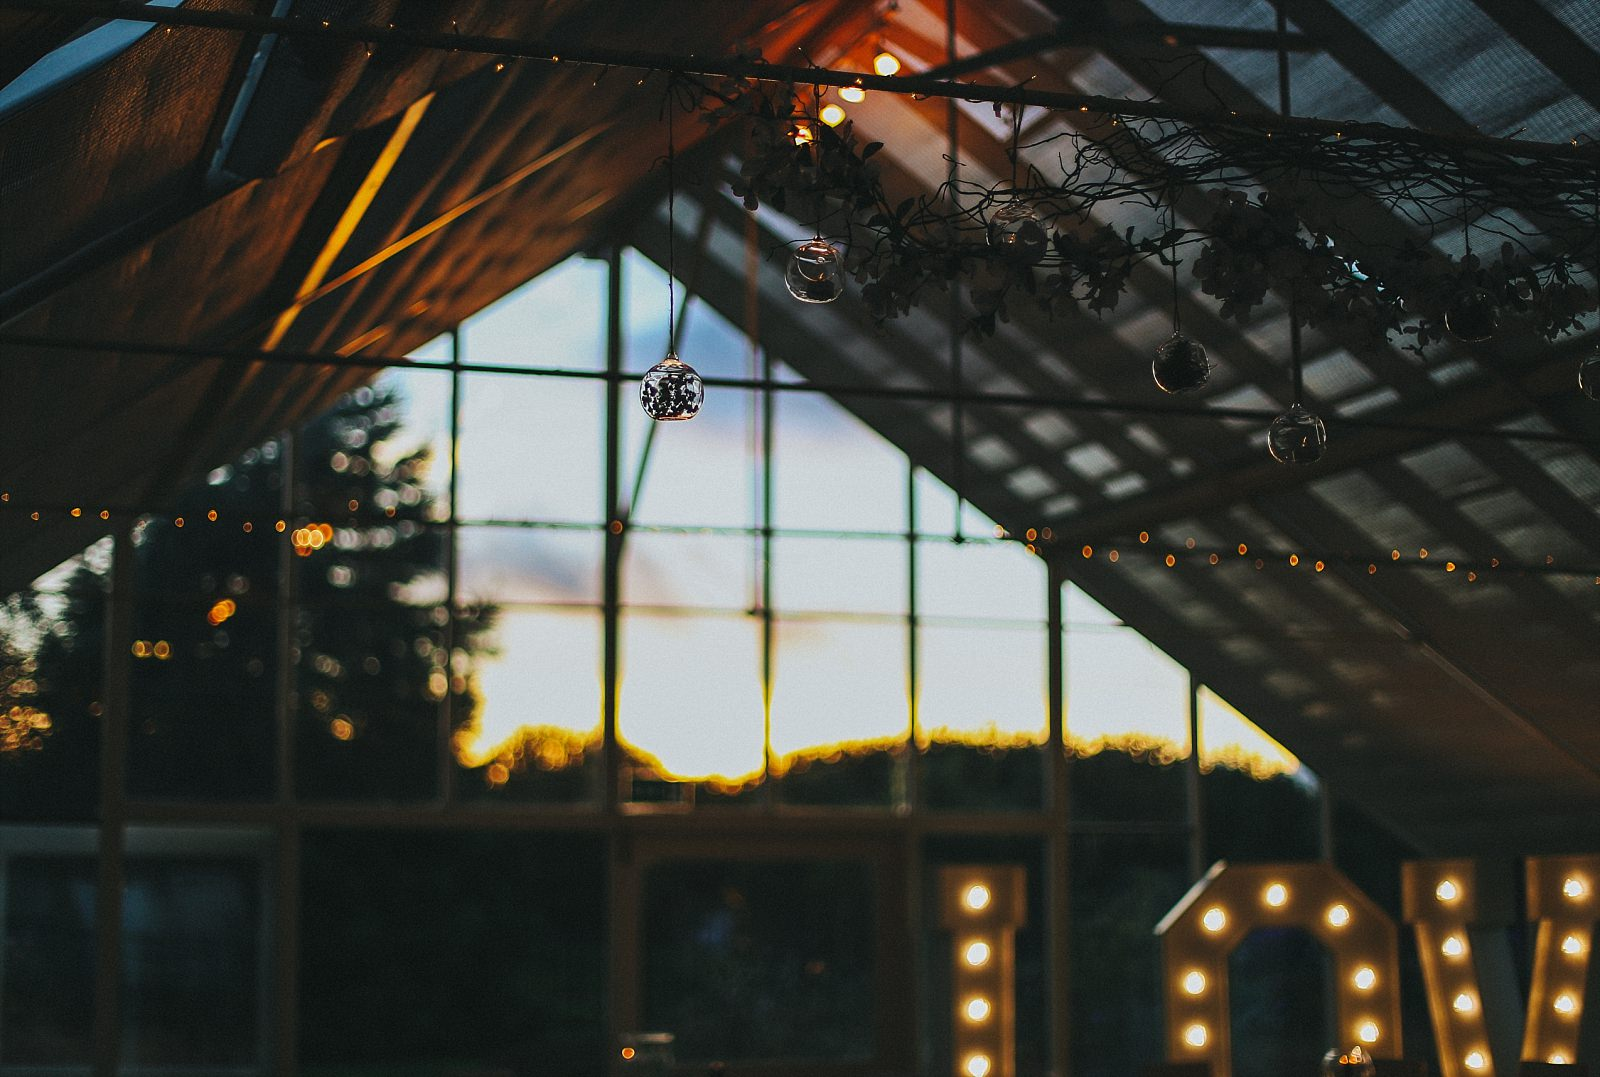 Abbeywood Estate Wedding in the evening during the summer nighta